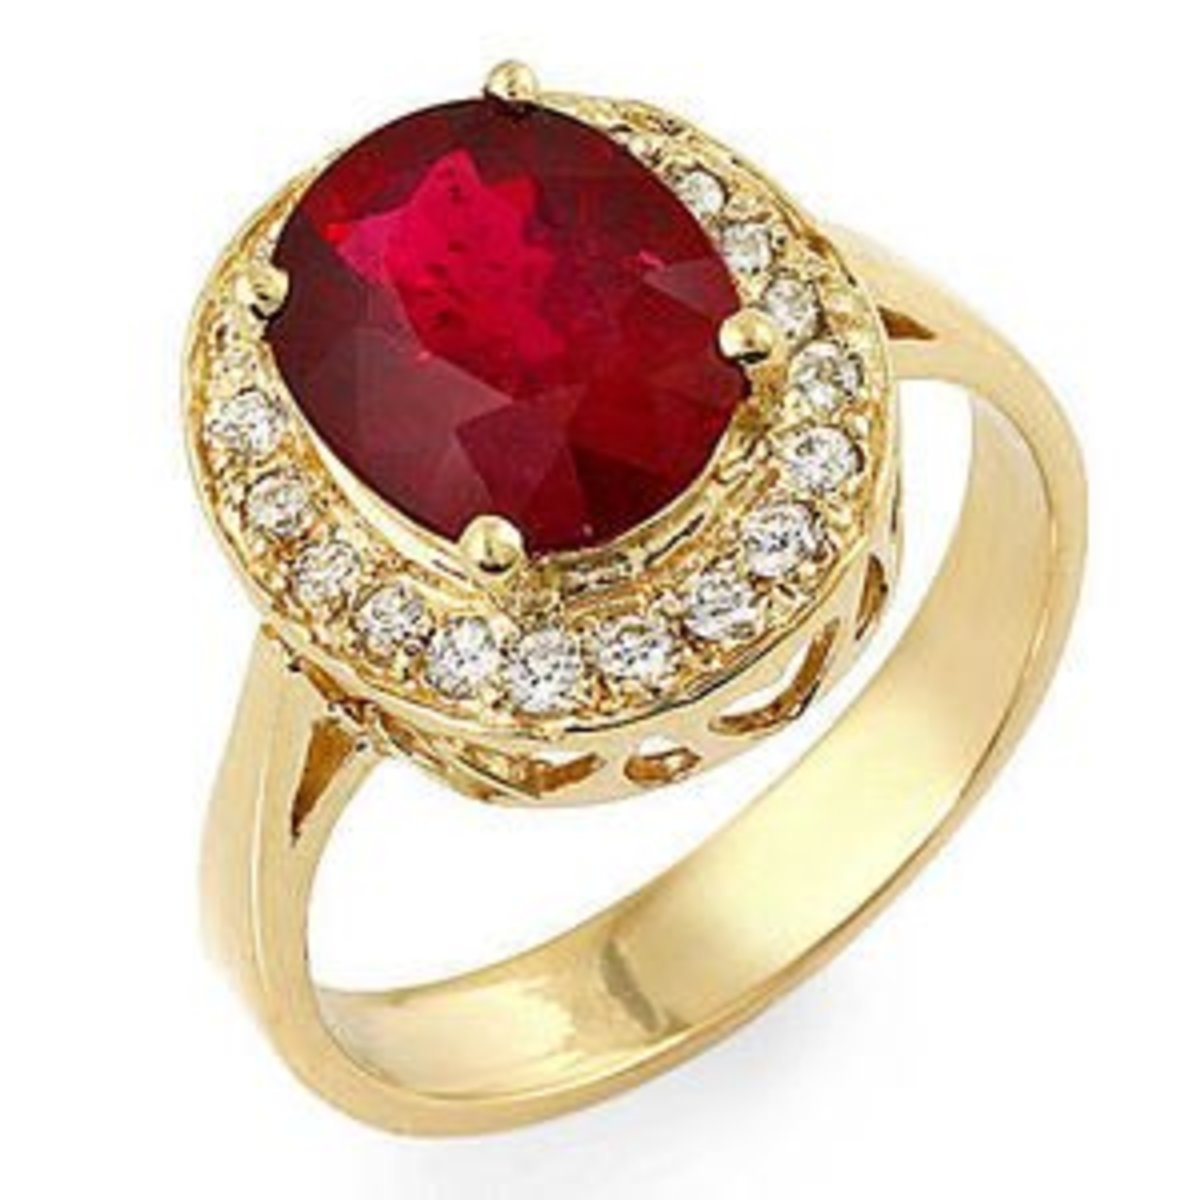 Ruby and Diamond Classic Ring Gift